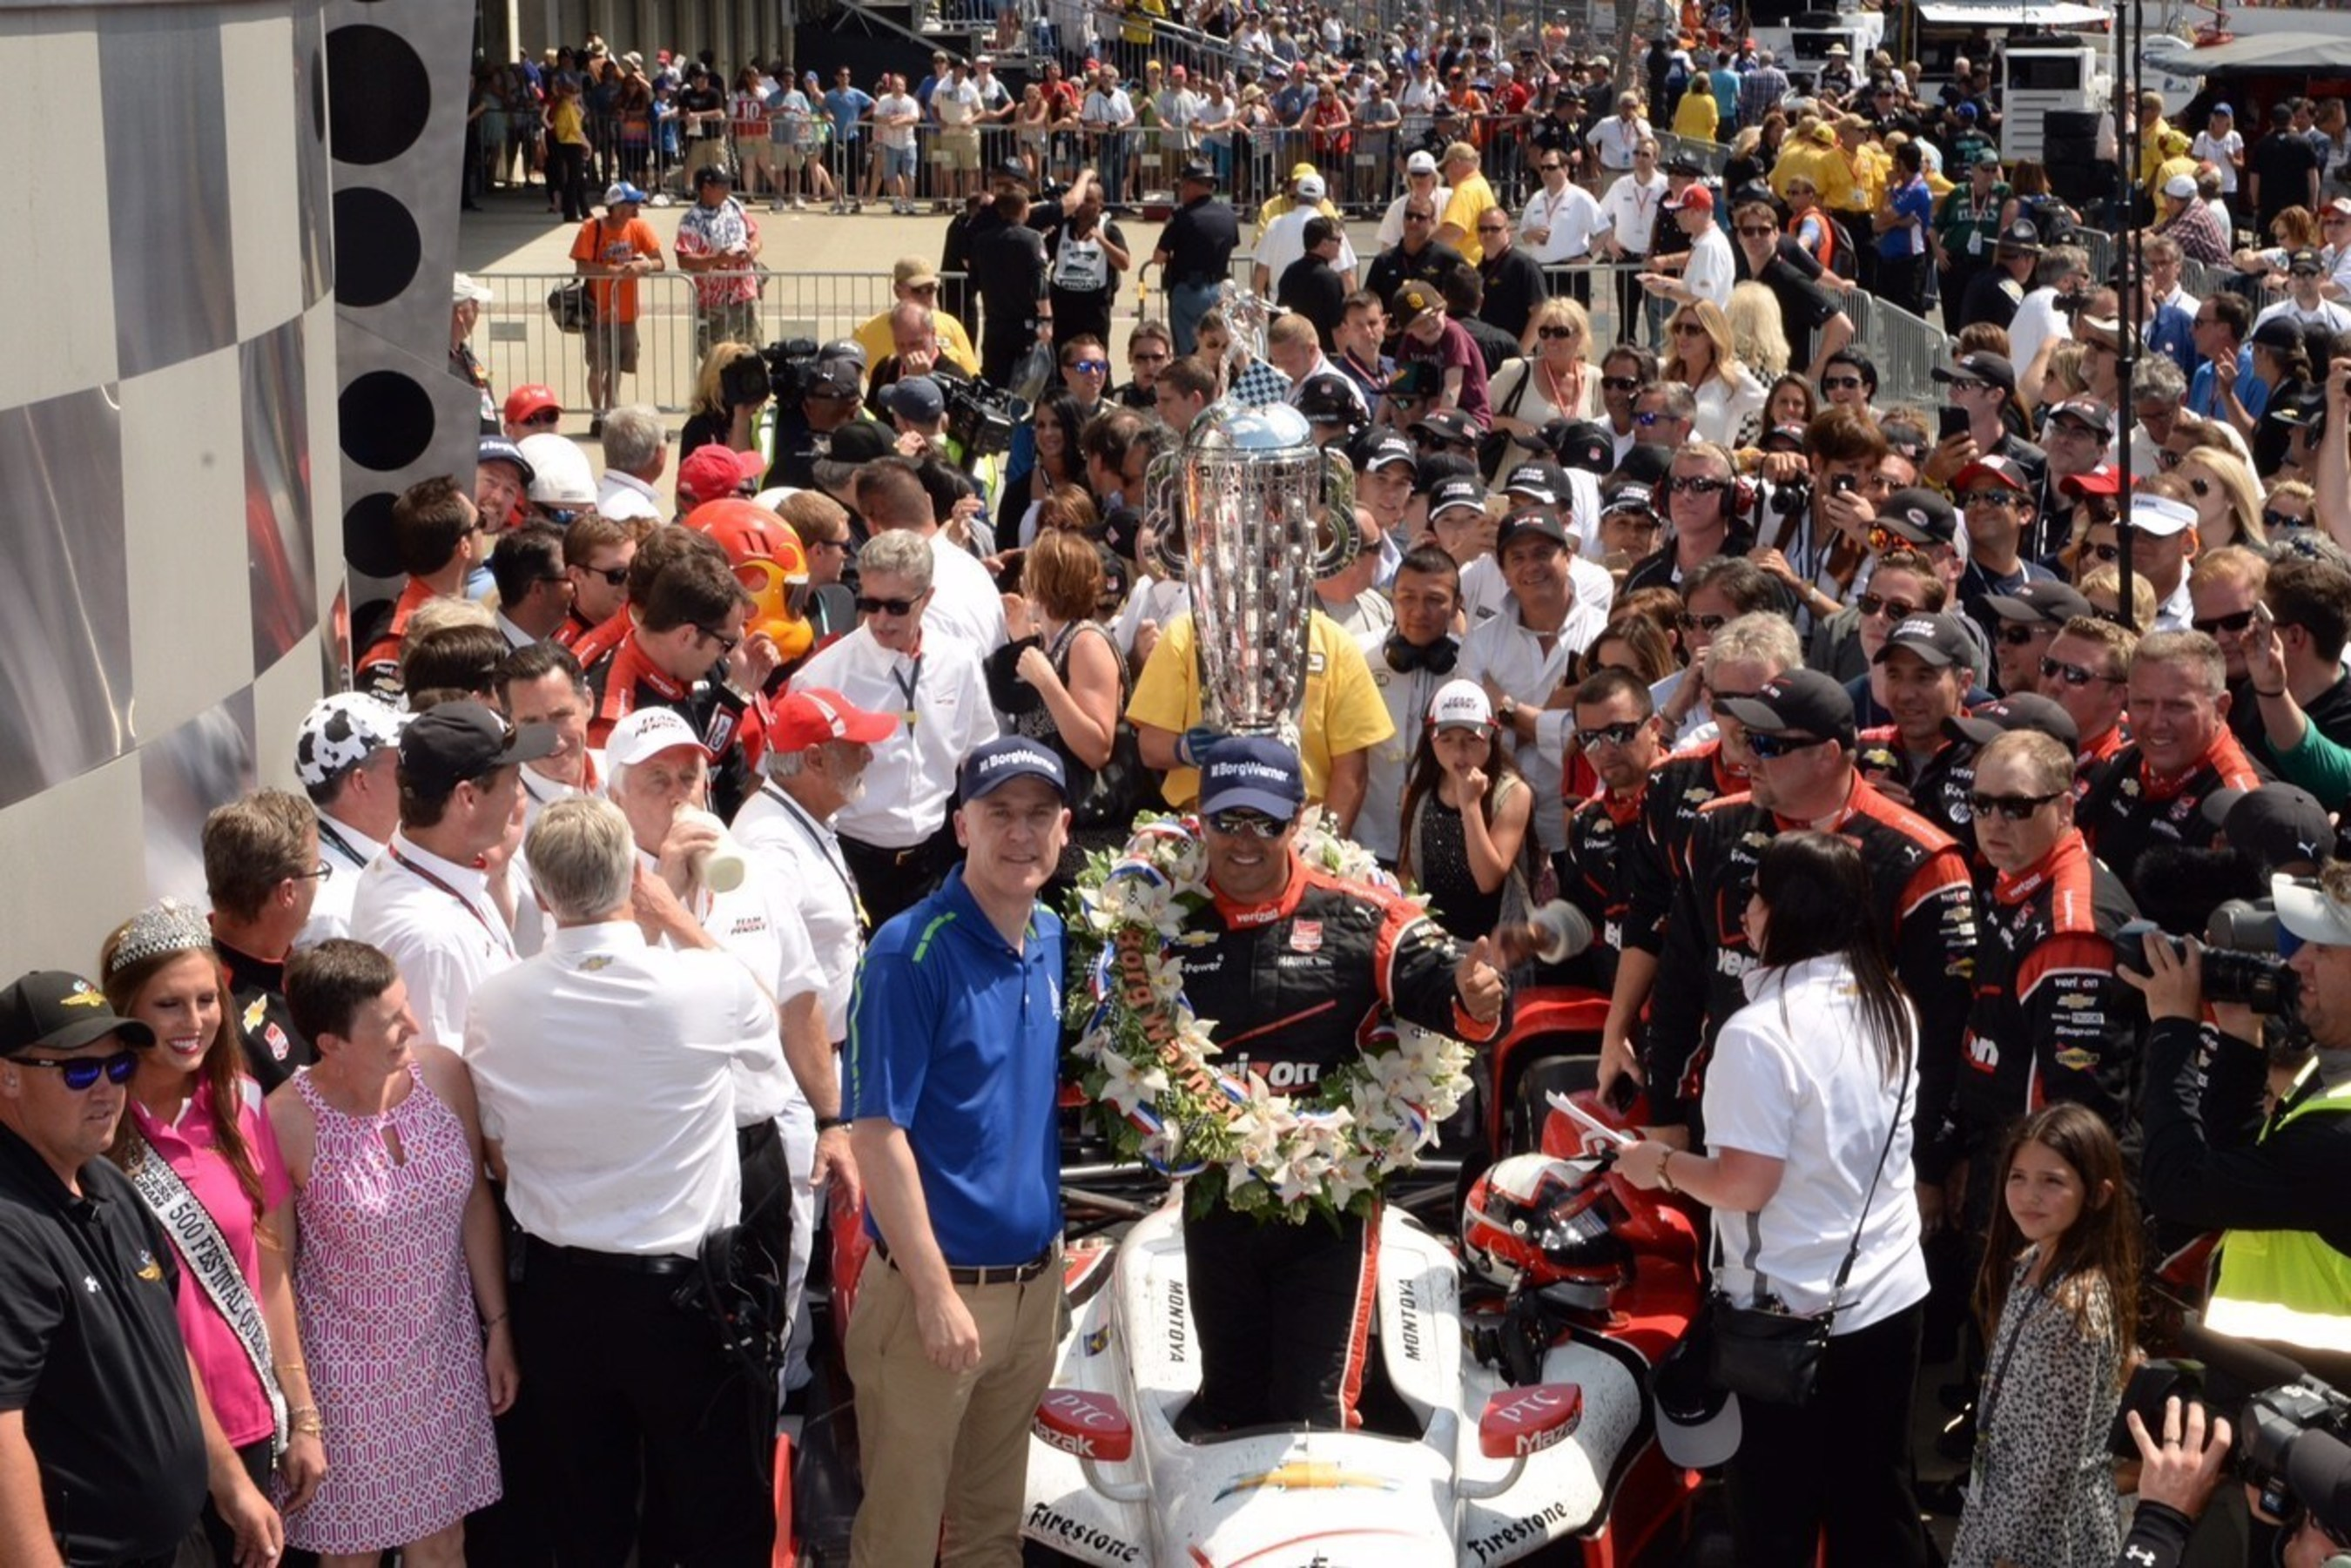 Standing beside the Borg-Warner Trophy(TM) in Victory Lane, BorgWarner President and Chief Executive Officer James Verrier congratulated Juan Pablo Montoya on his victory at the Indianapolis 500.